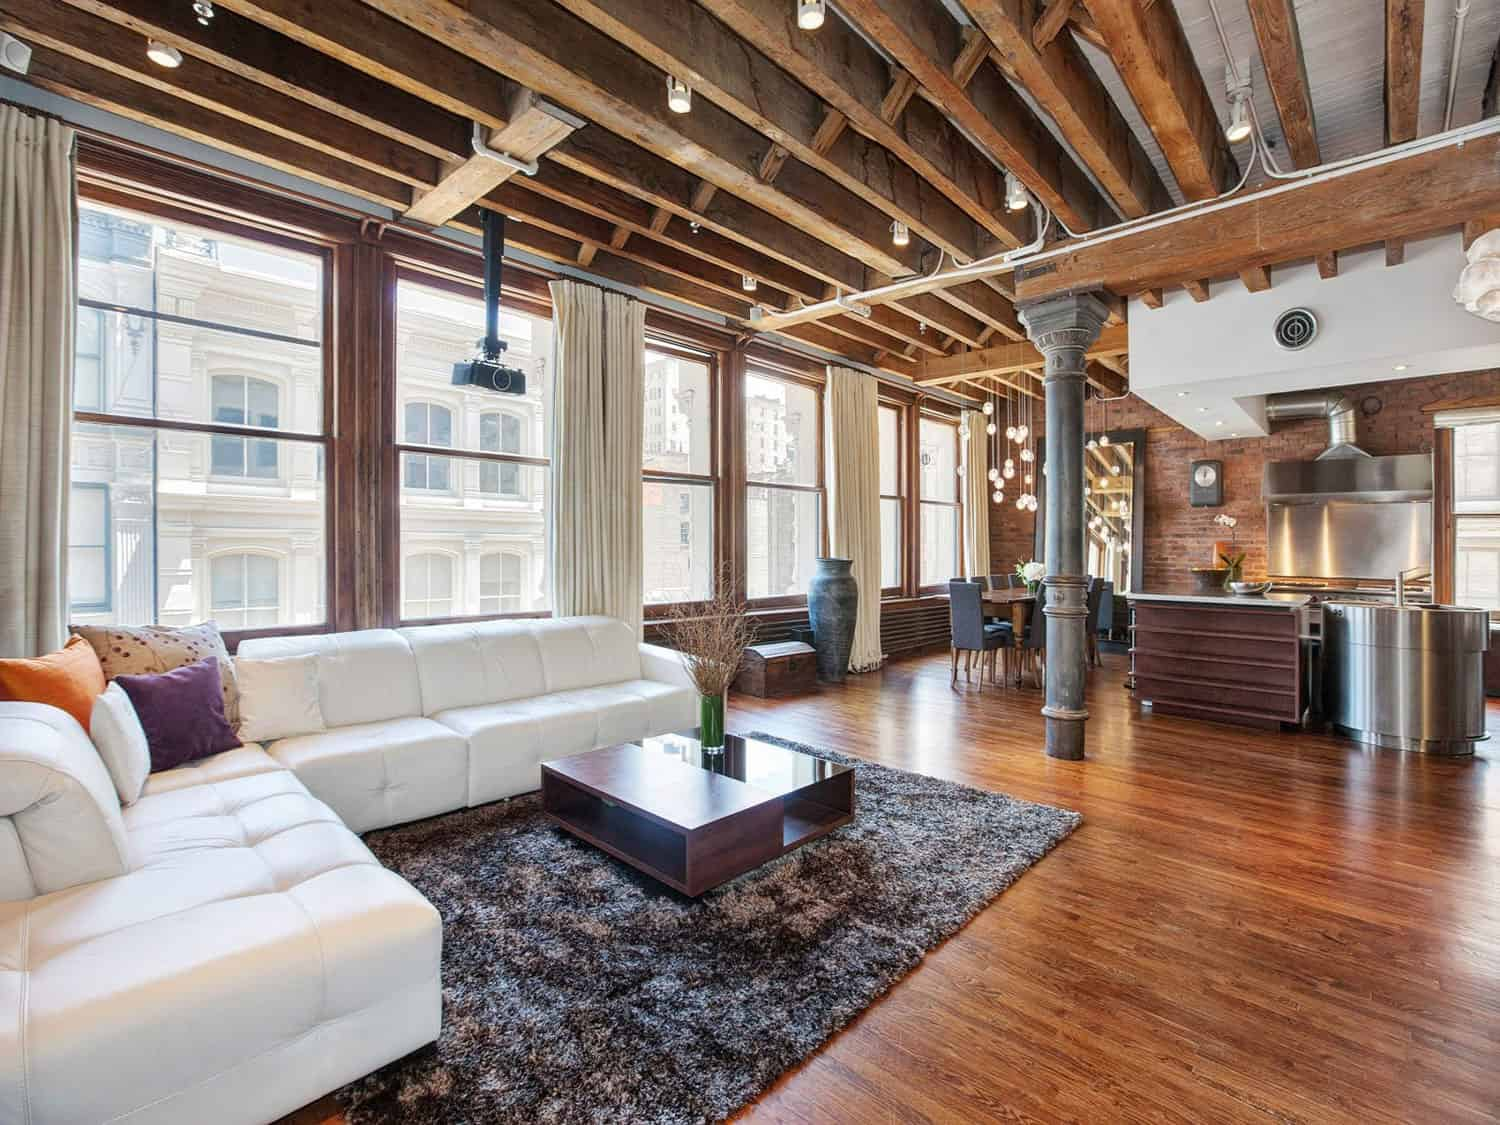 Uncategorized Exposed Wooden Beams open plan apartment with exposed wood beams and iron columns